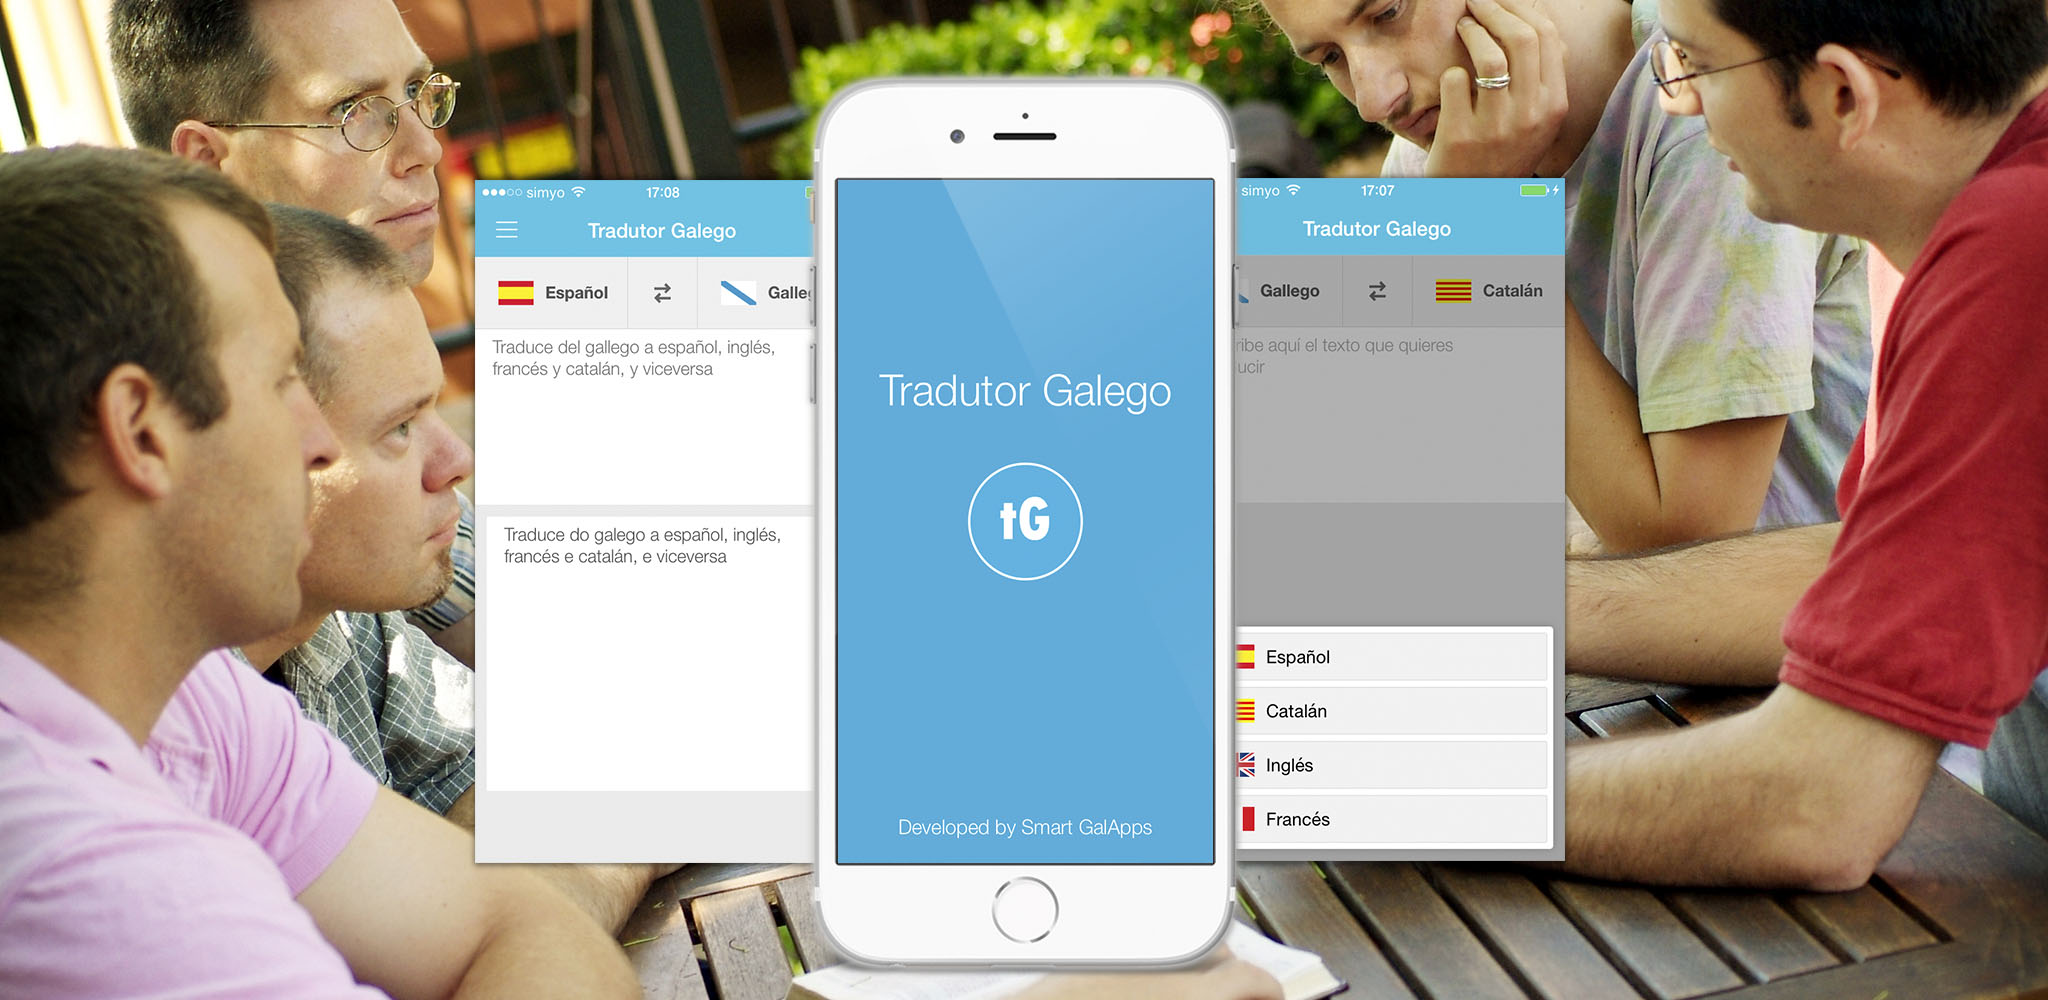 TradutorGalego | Translates texts from Galician to Spanish, Catalan, French, English, and vice-versa.